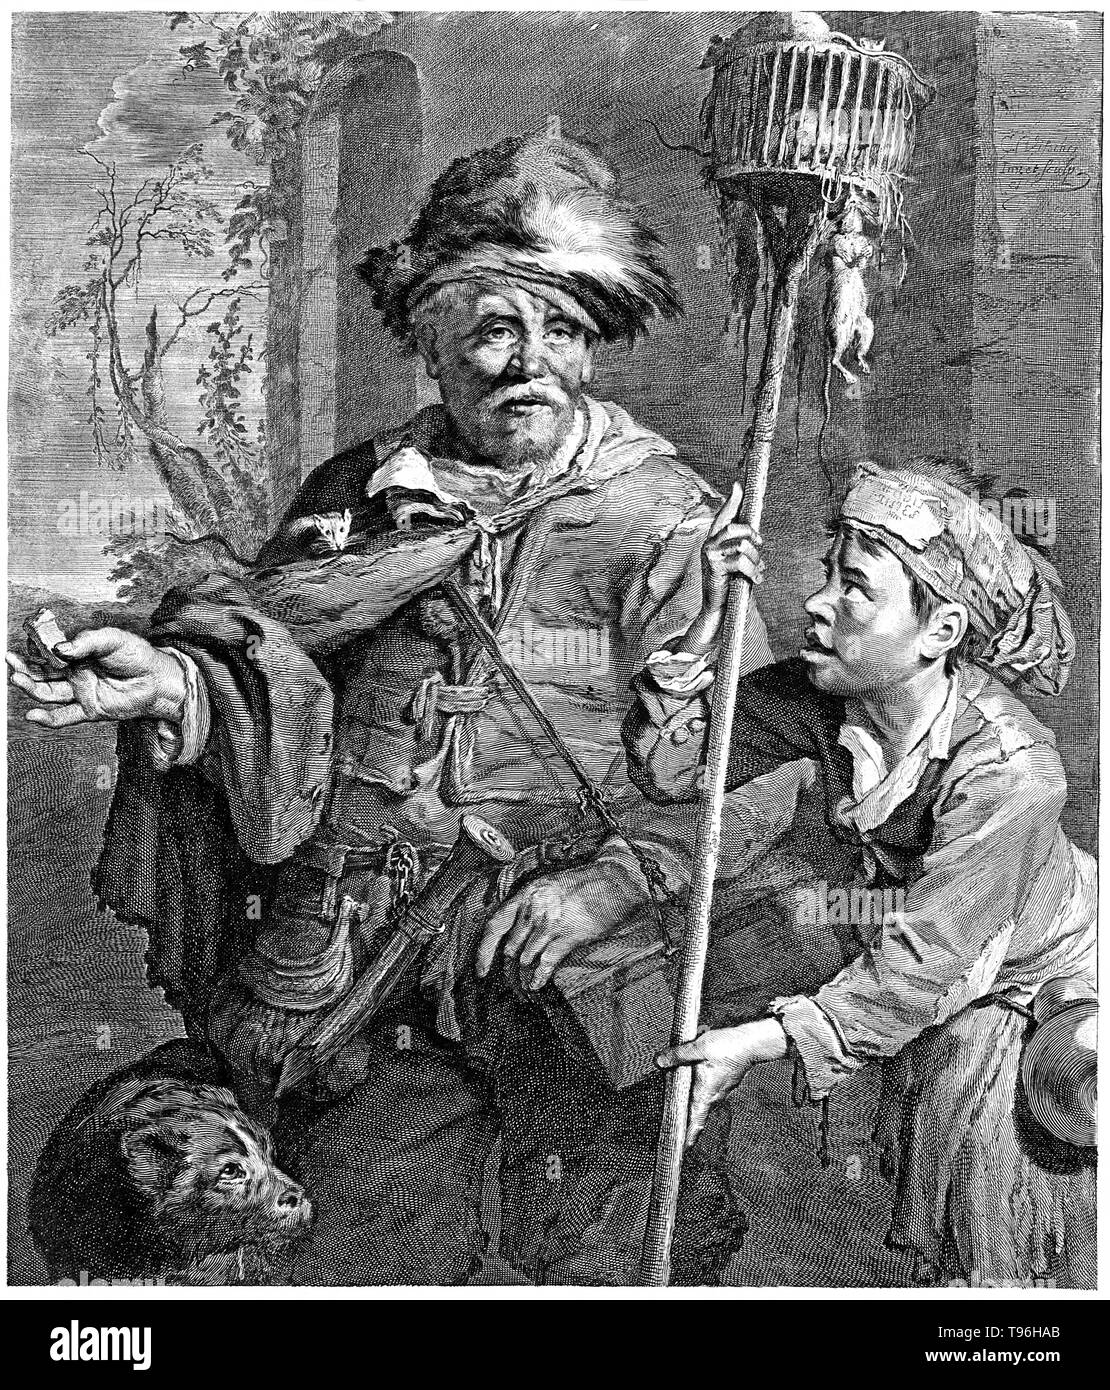 A rat-catcher in Haarlem with a rat running along his cape holds out rat poison in his right hand; to the right a boy assistant carries a cage on a long stick with rats in it and hanging off it. A rat-catcher is a person who practices rat-catching as a professional form of pest control. Keeping the rat population under control was practiced in Europe to prevent the spread of diseases, most notoriously the Black Plague, and to prevent damage to food supplies. - Stock Image